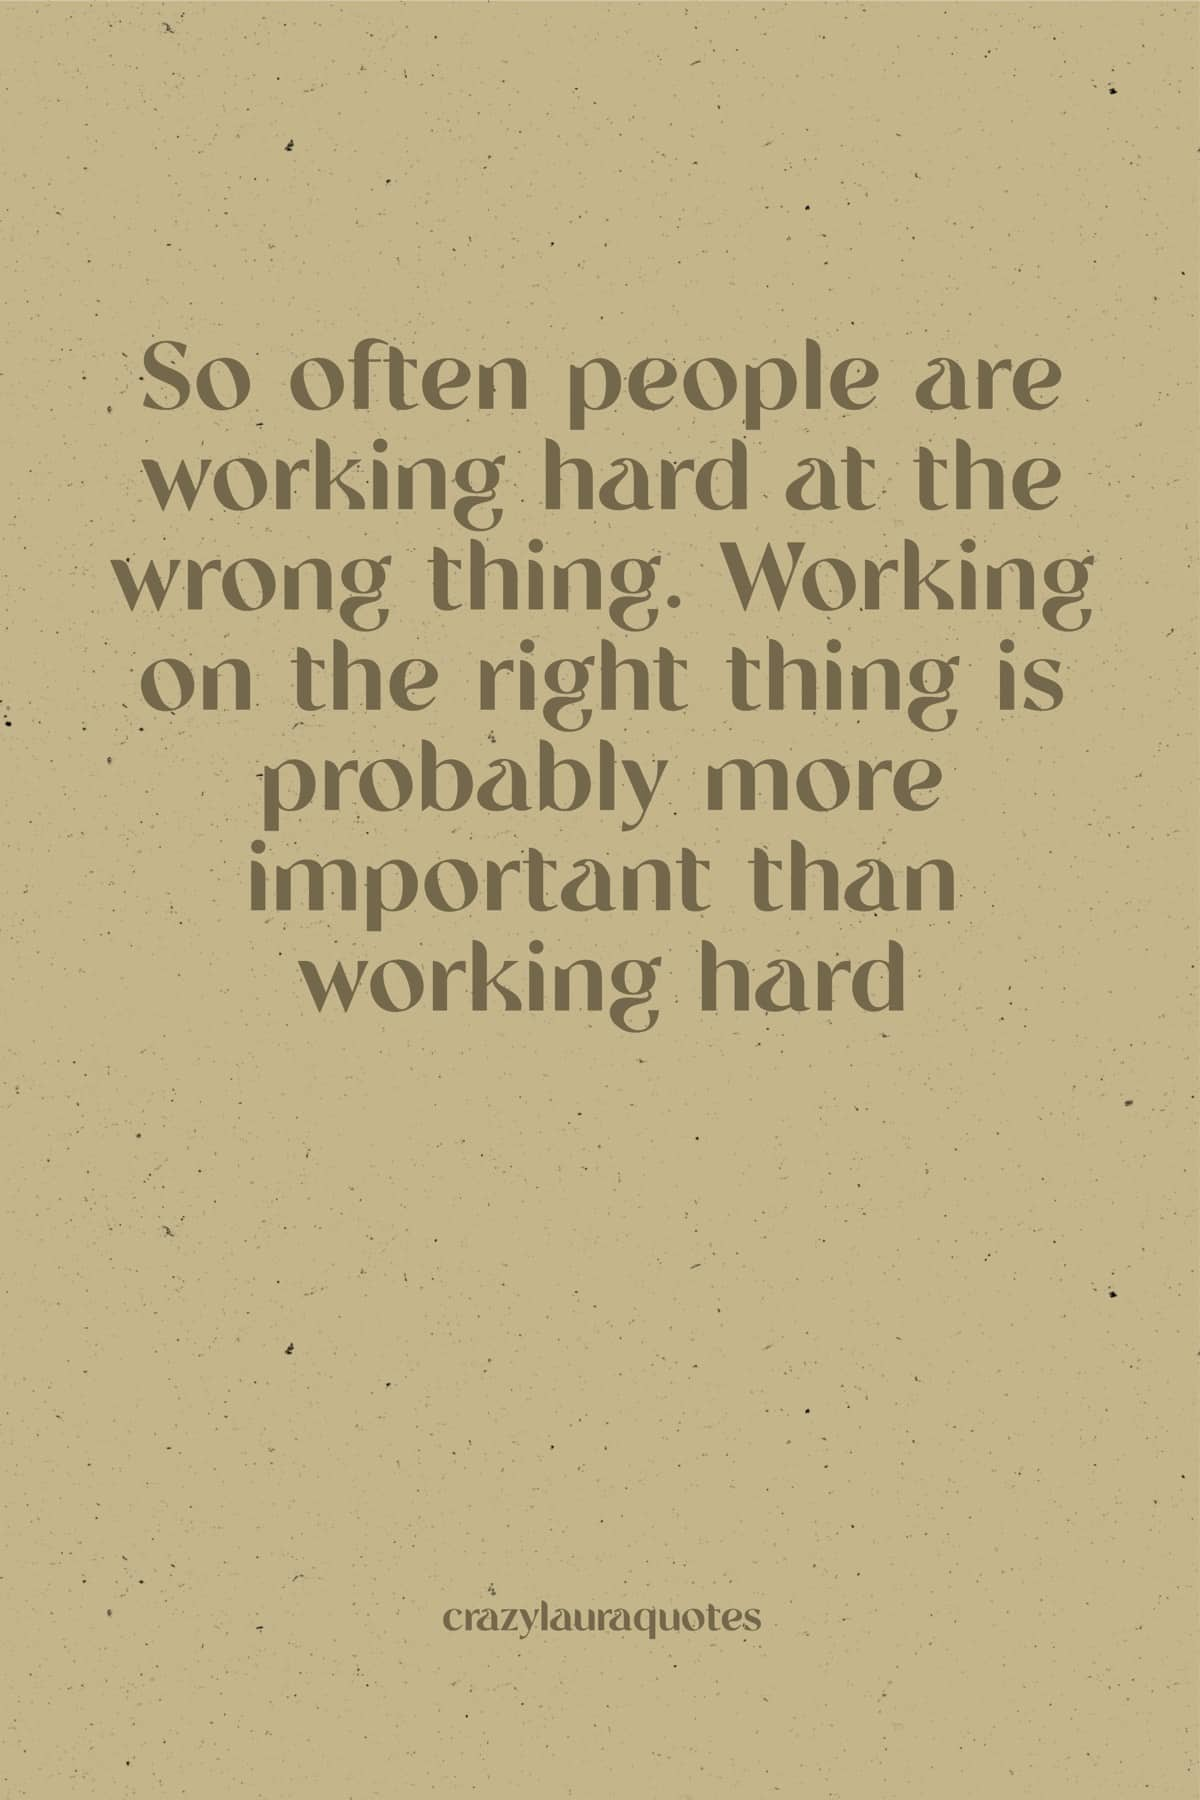 work on the right thing quote